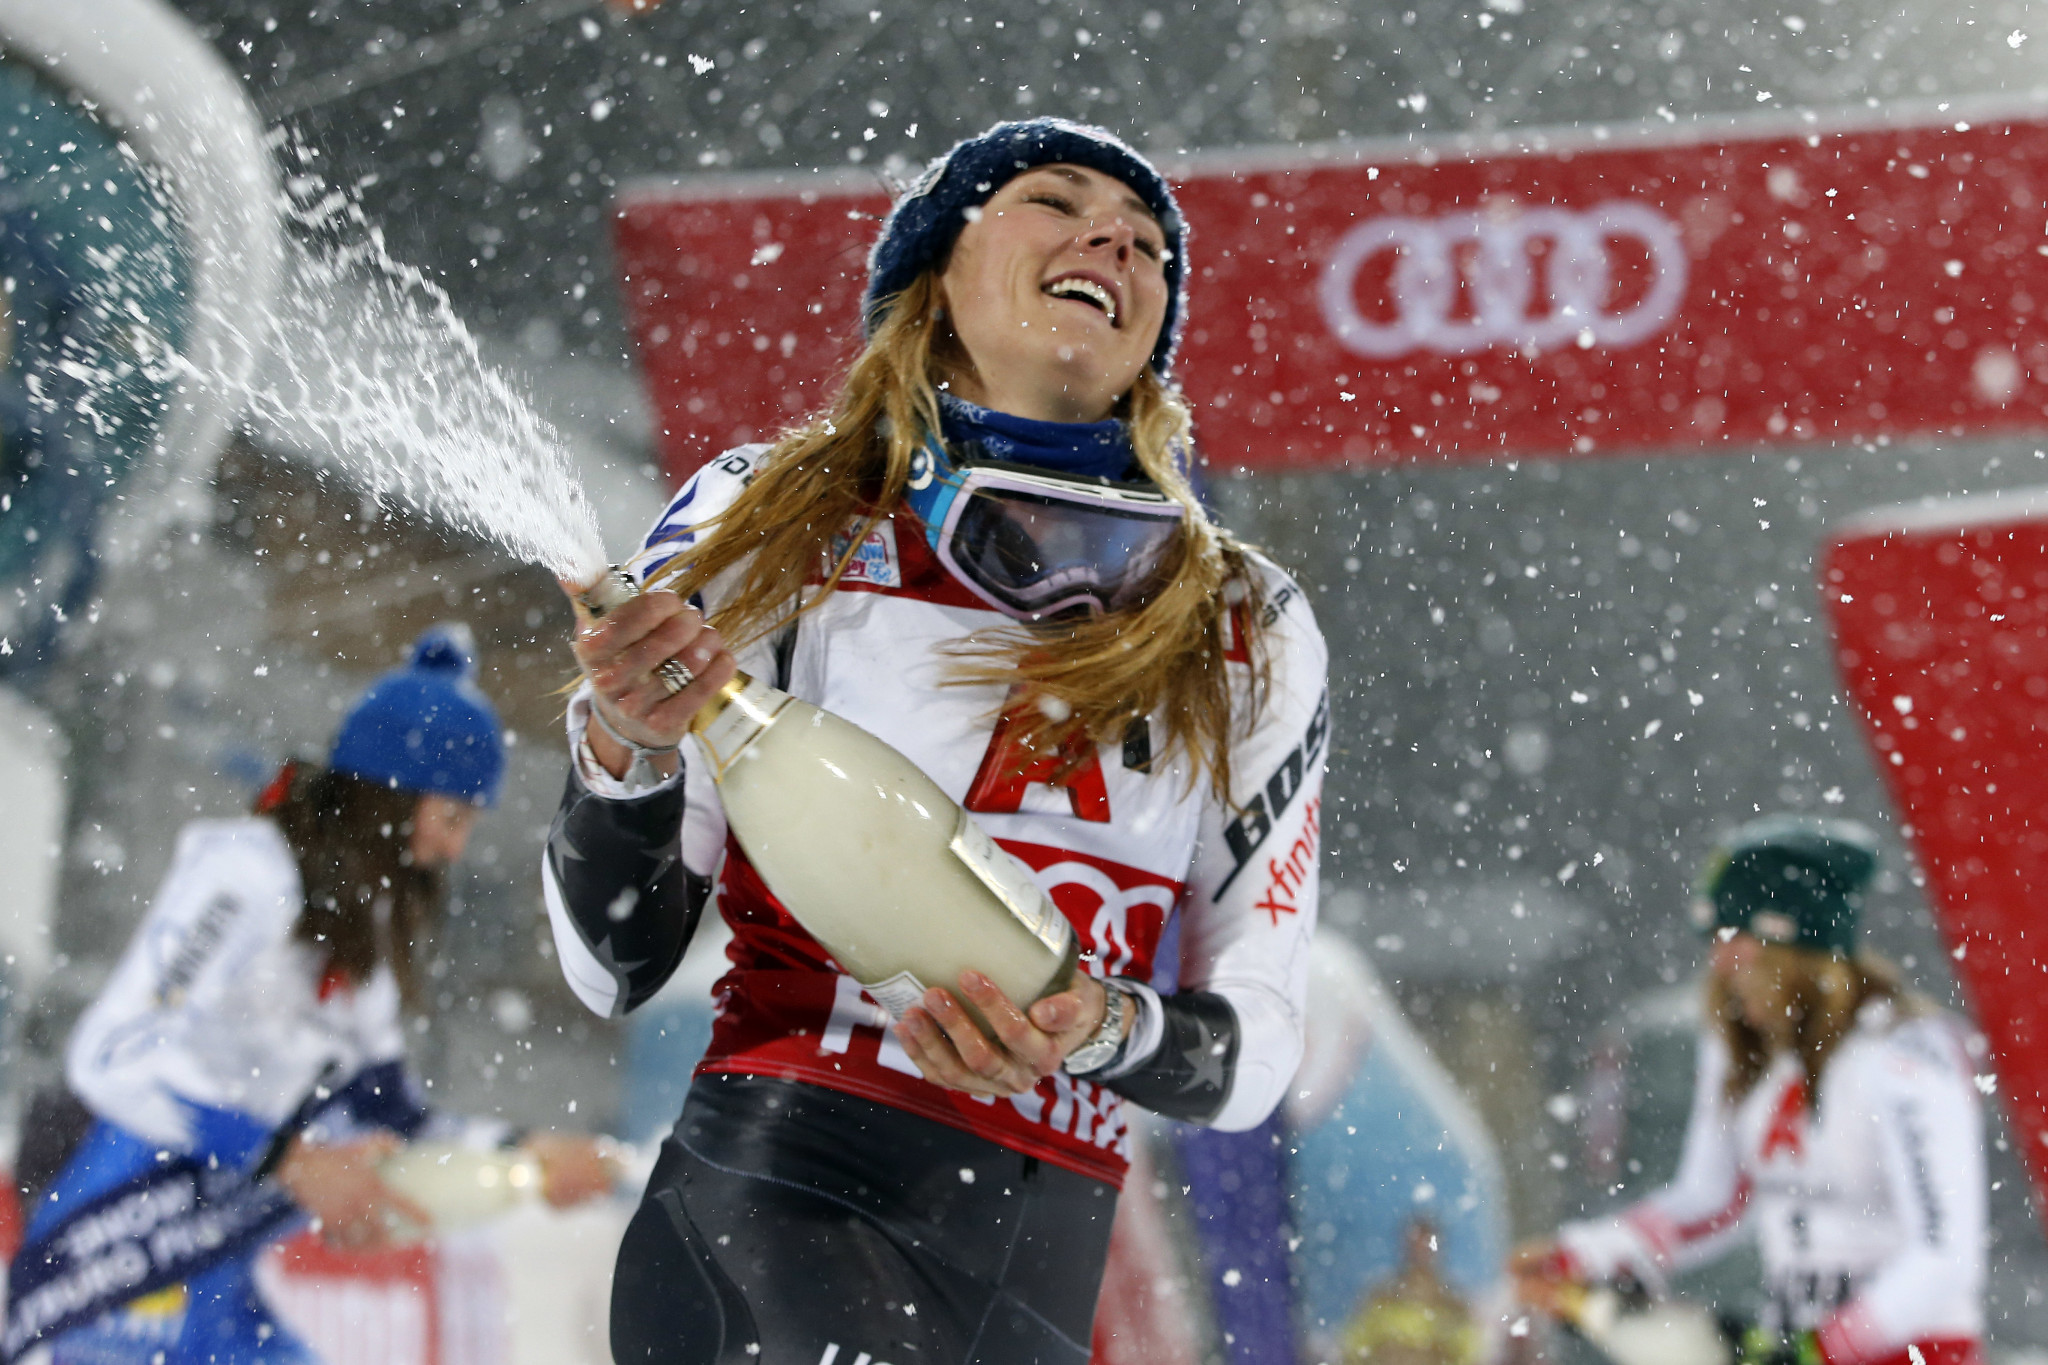 Mikaela Shiffrin, who has won 52 times on the Alpine Skiing World Cup circuit, is considered by some to be the greatest slalom skier of all time ©Getty Images